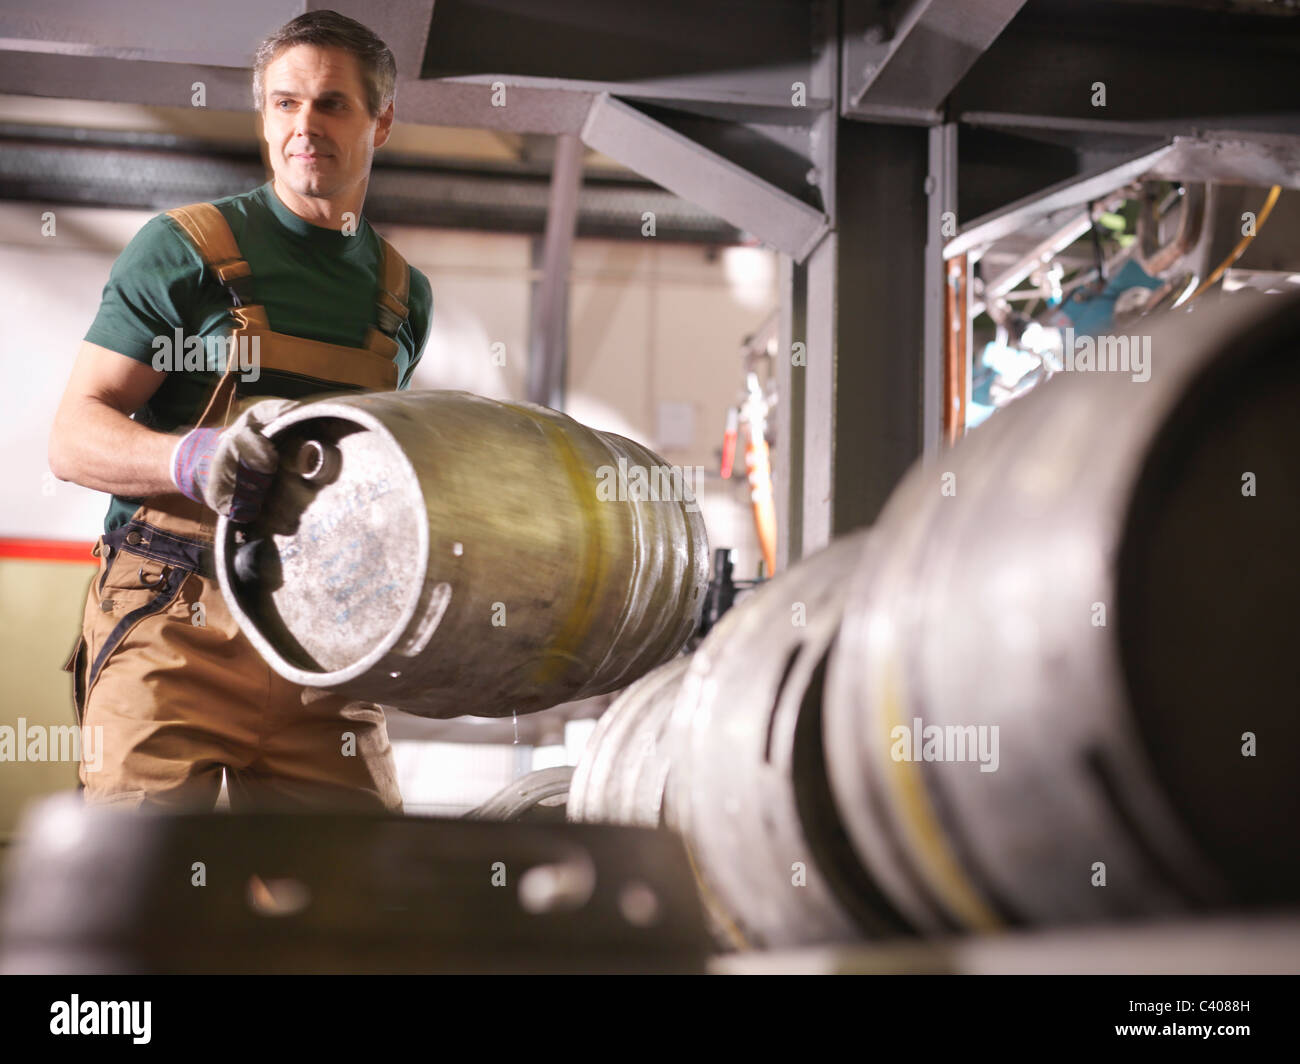 Worker lifting barrel in brewery - Stock Image